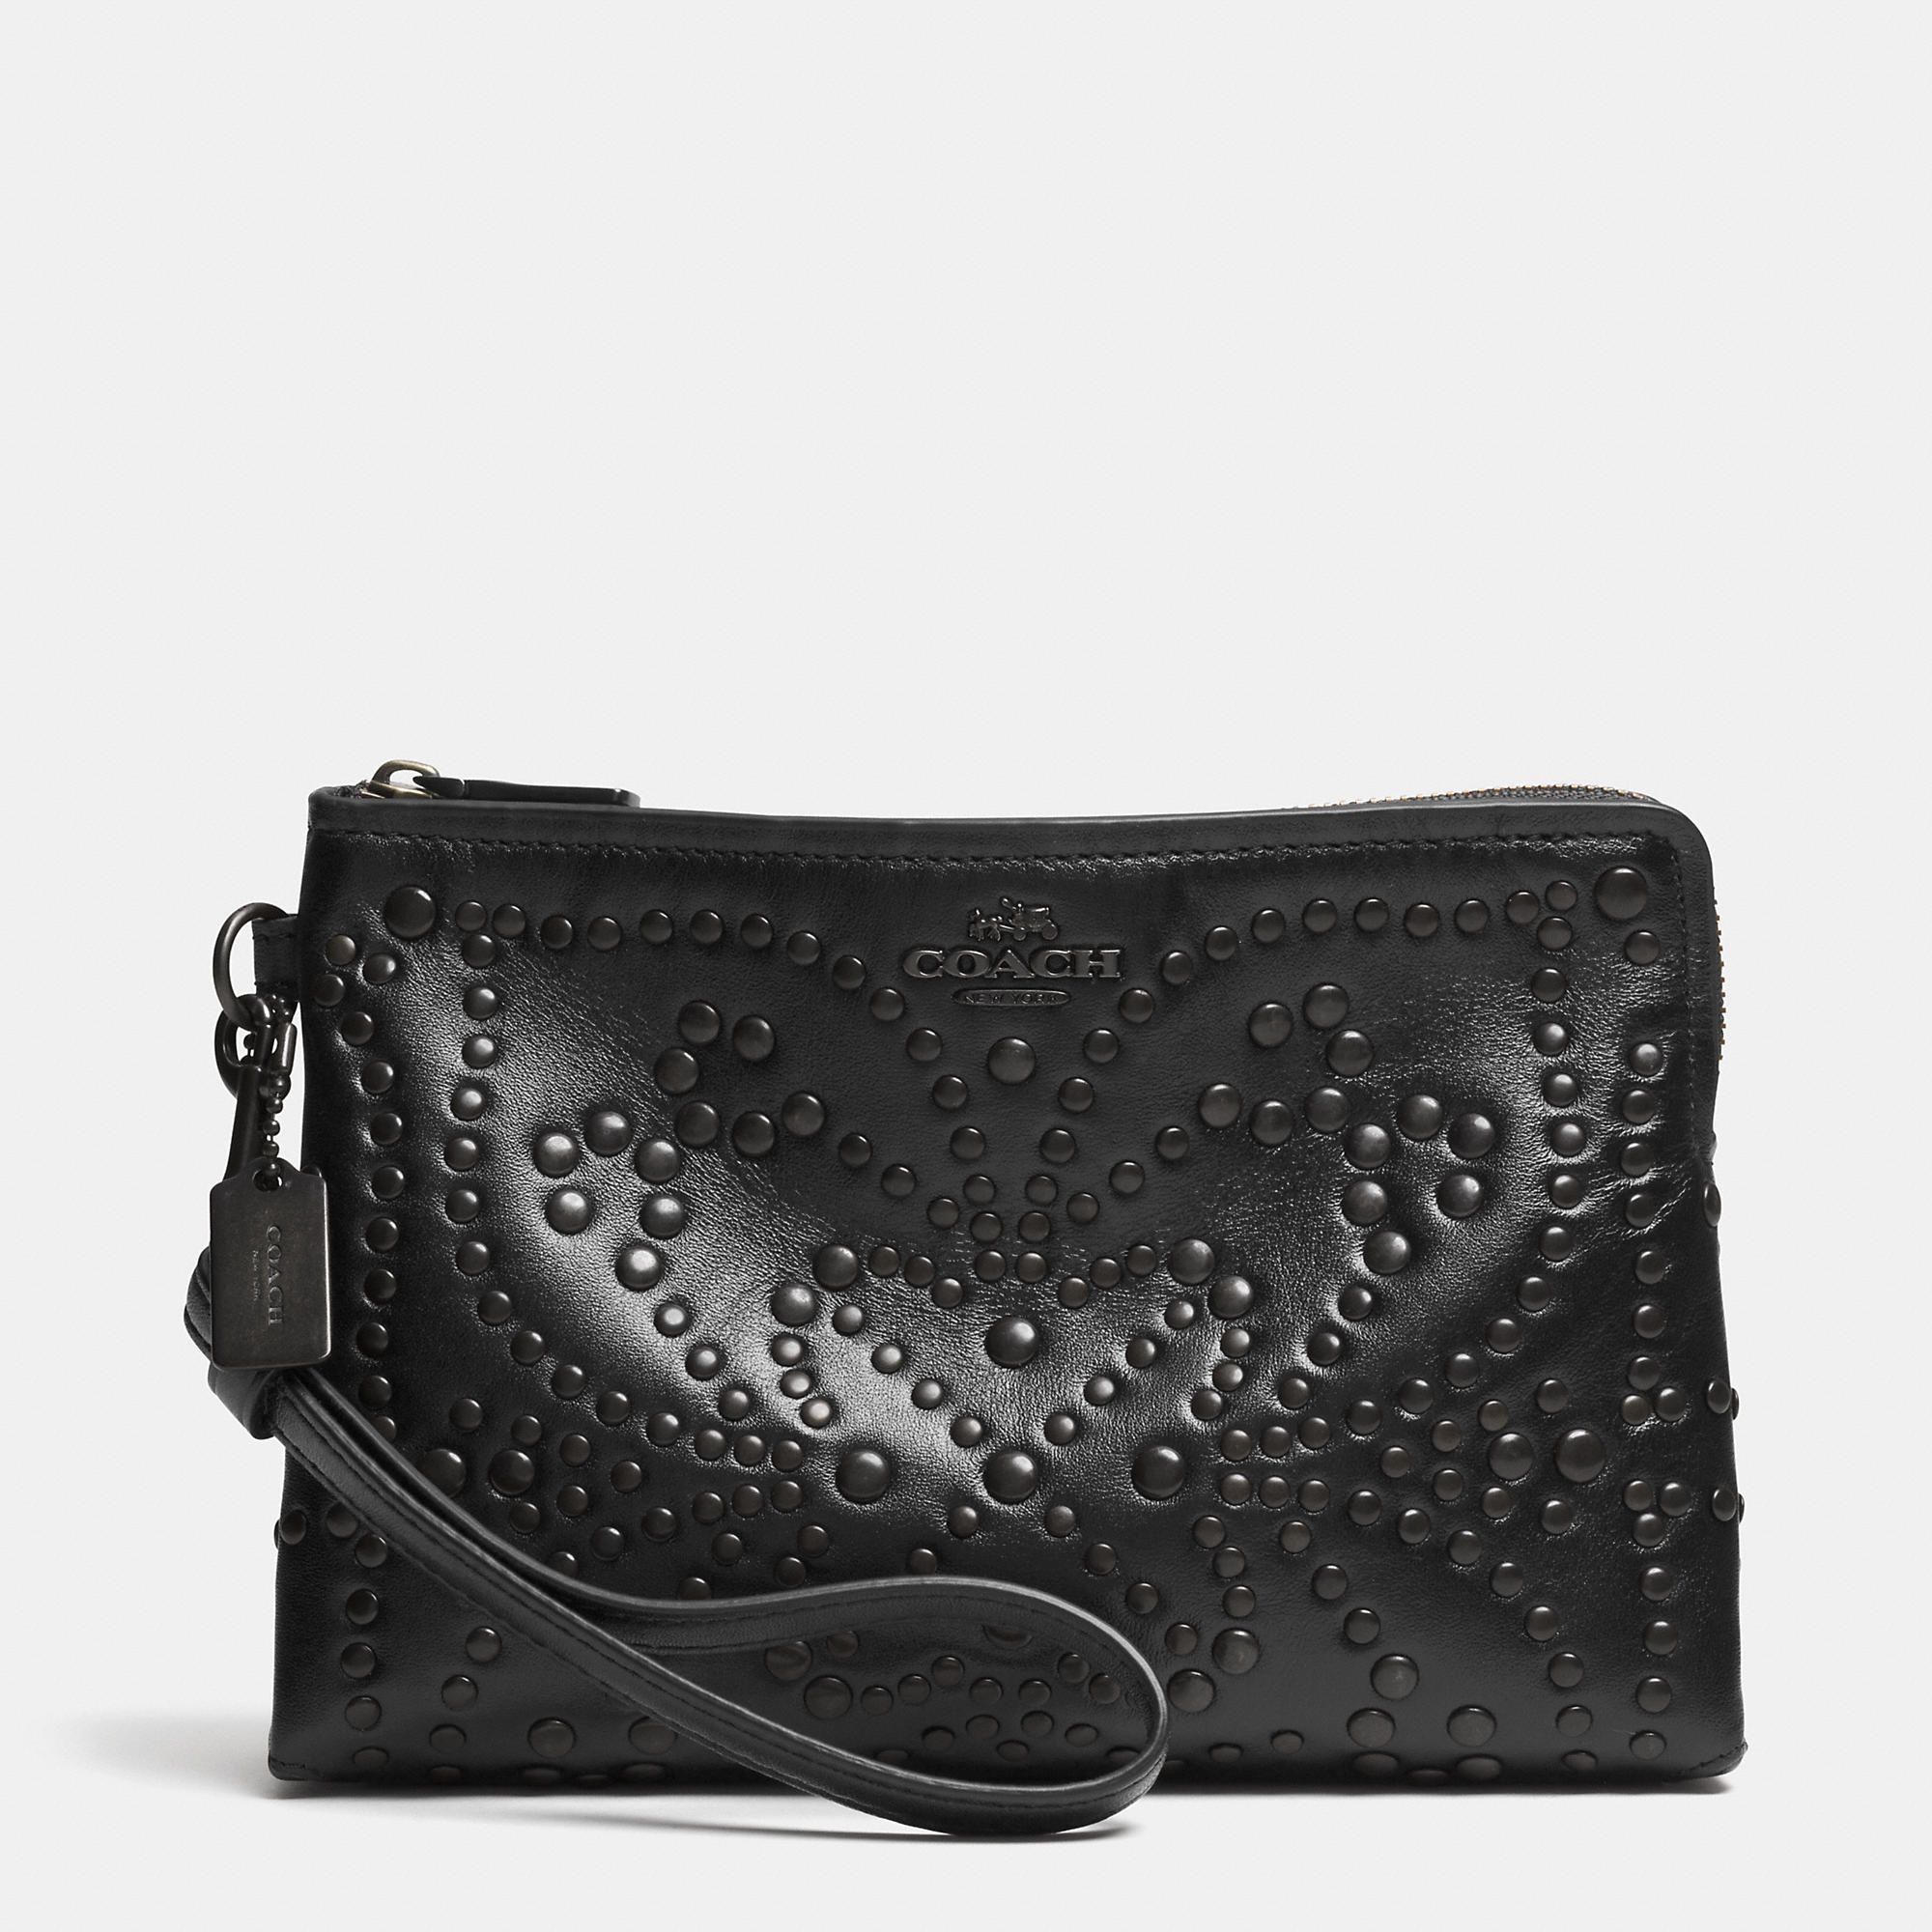 Website For Coacoach Outlet Super Coach Bags Handbags Fashion